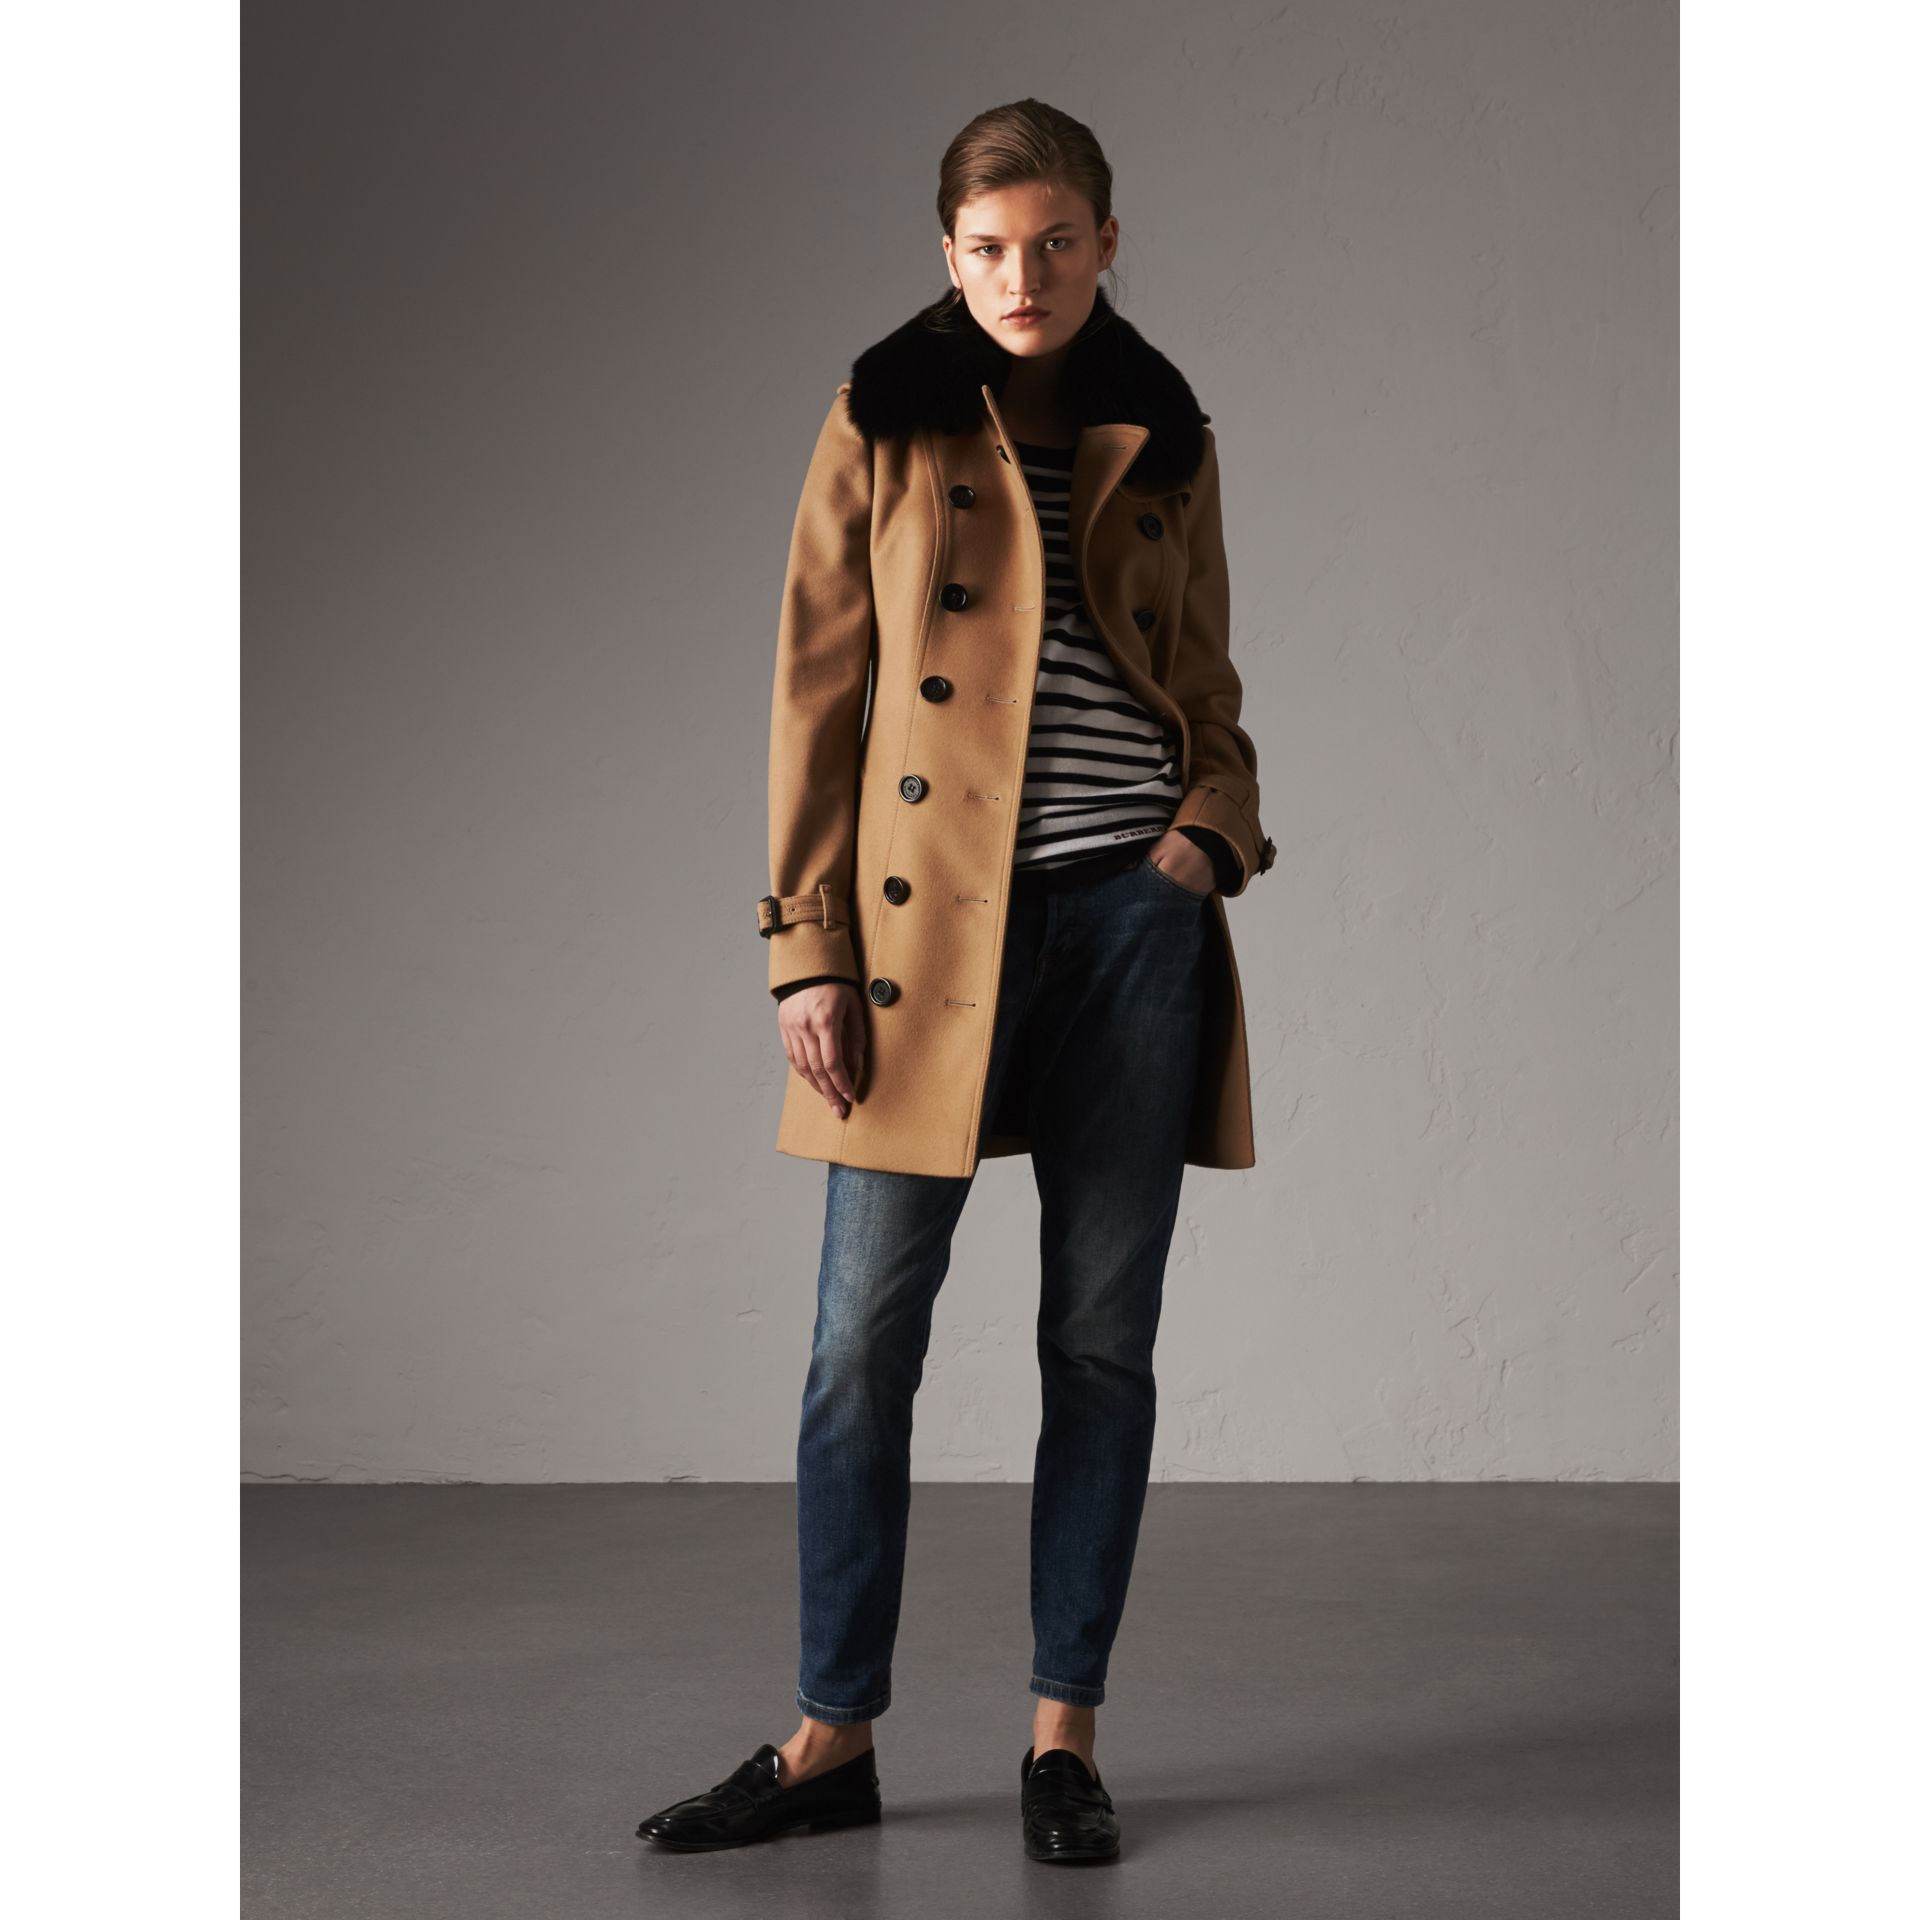 Wool Cashmere Trench Coat with Fur Collar in Camel - Women | Burberry - gallery image 6